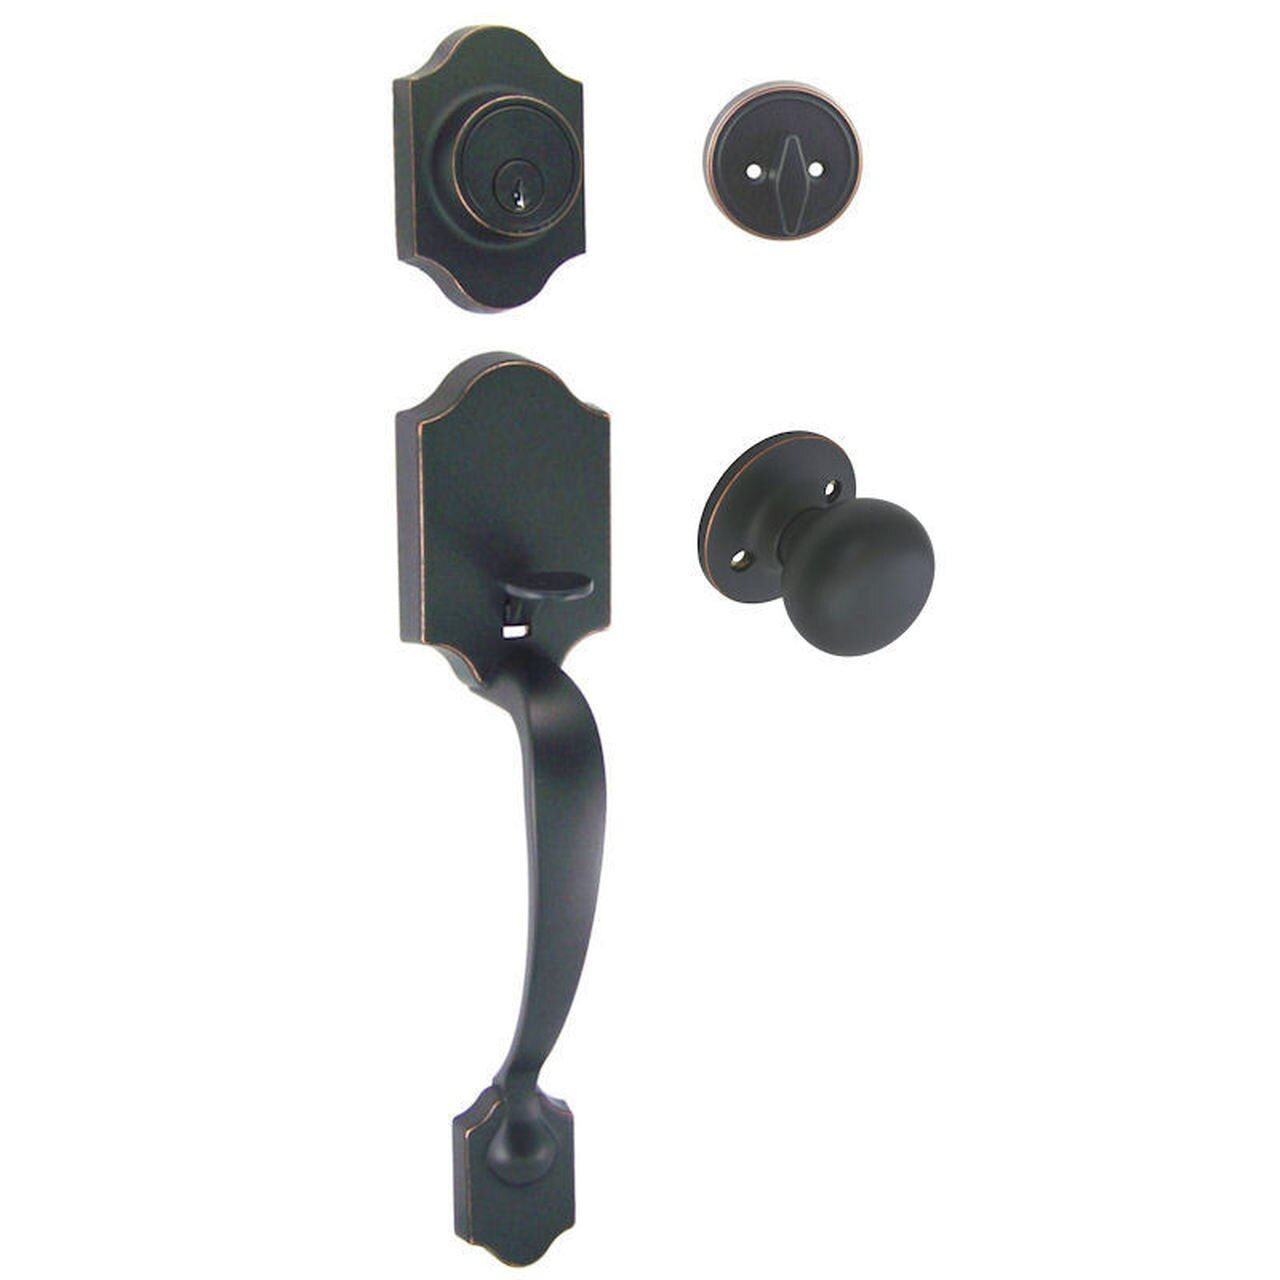 Valhala Oil Rubbed Bronze Decorative Handleset with Bedford Knob